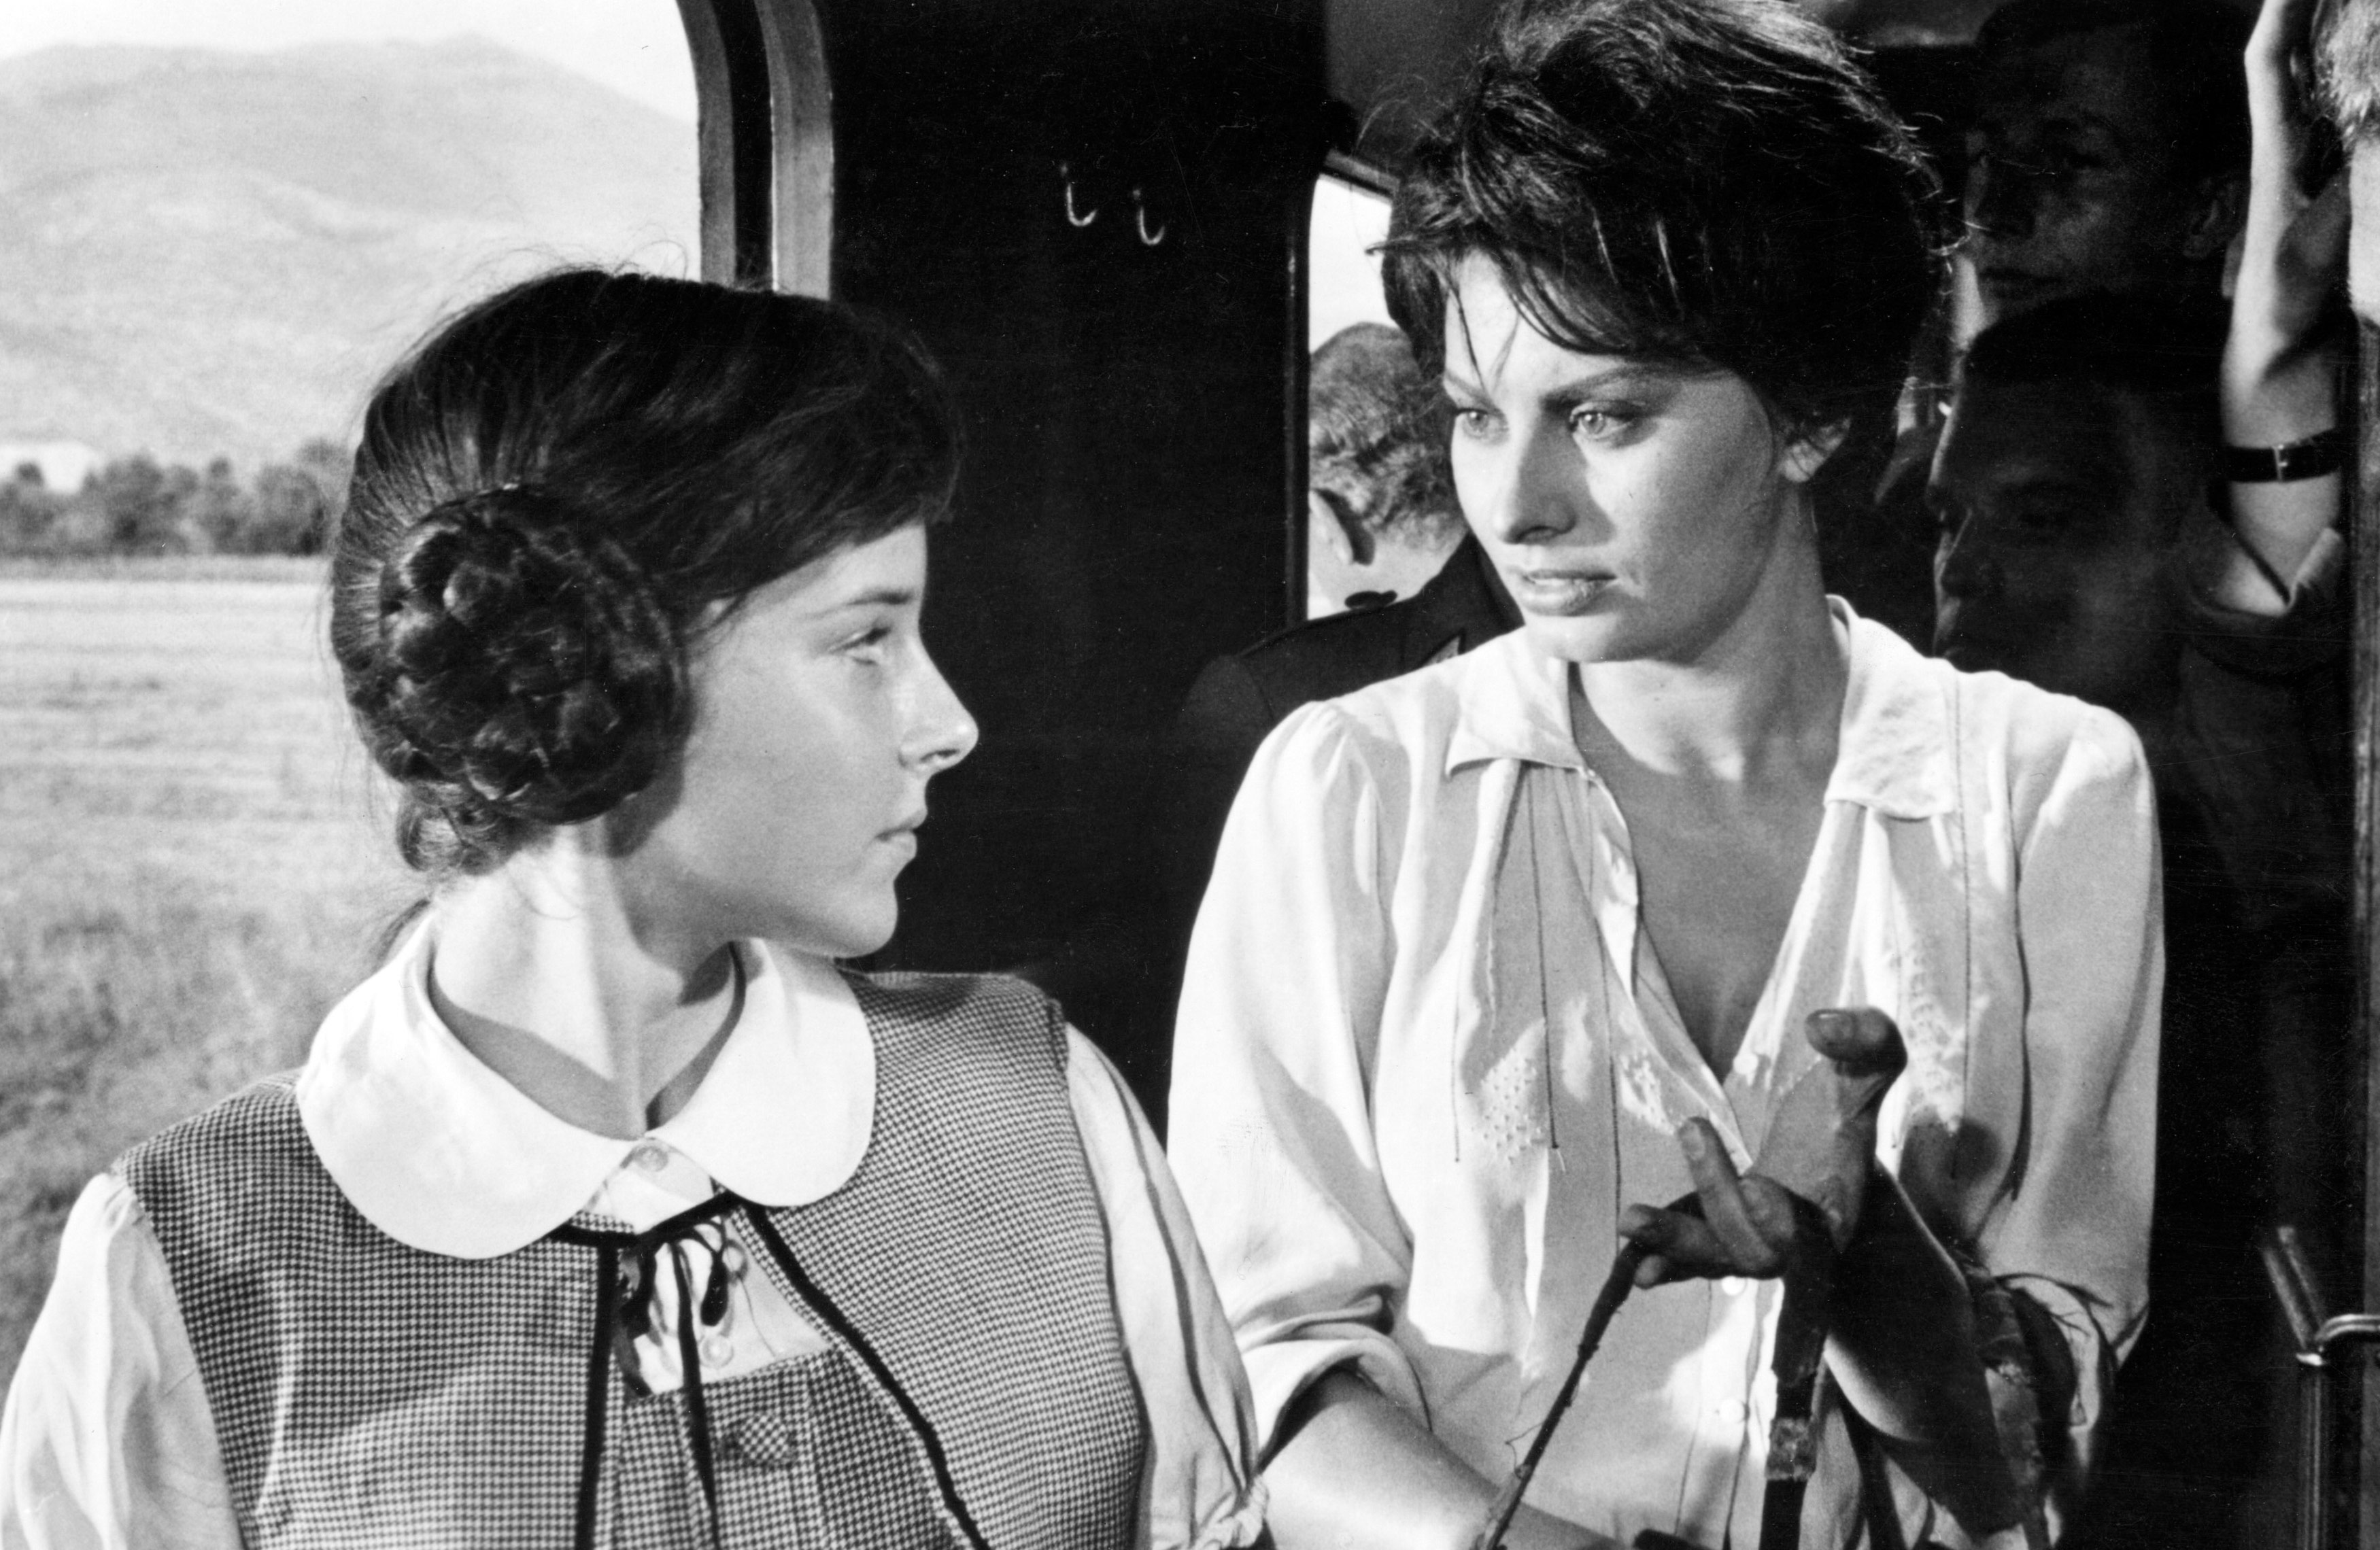 https://silverscreenings.files.wordpress.com/2019/05/sophie-loren-two-women-1960.jpg